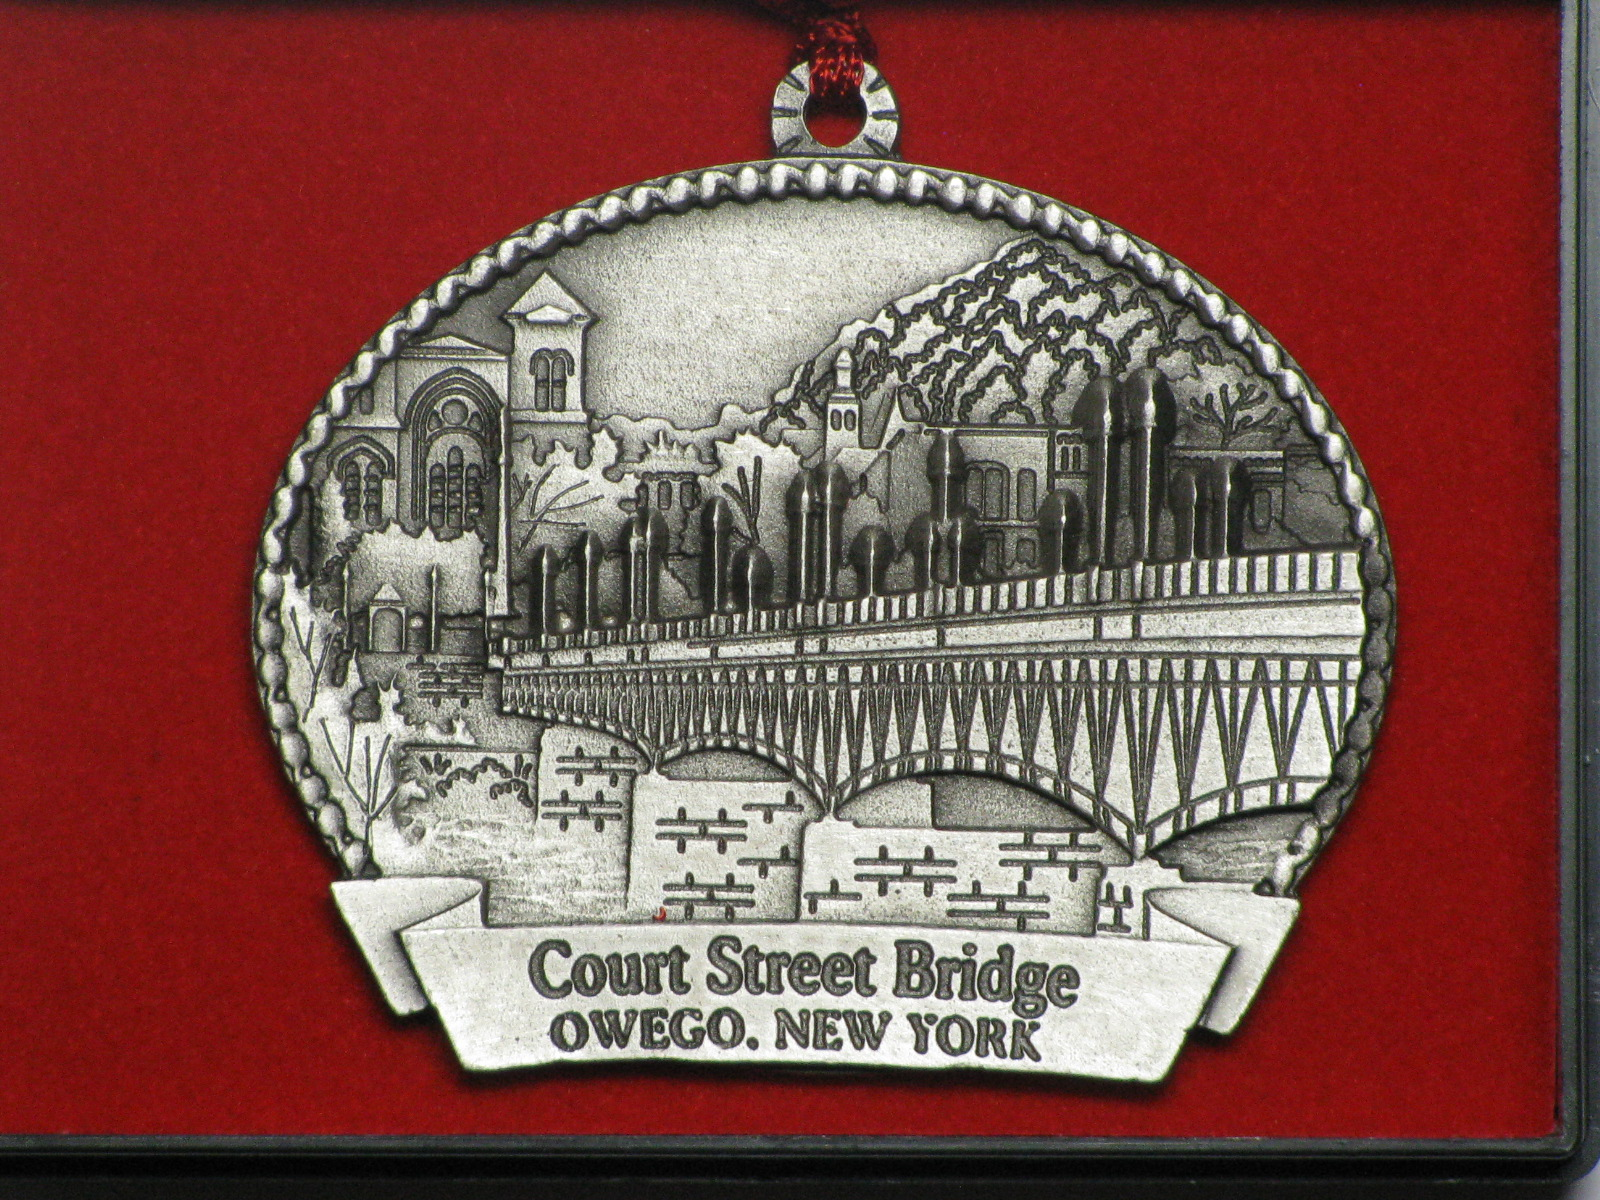 Court Street Bridge is featured on this year's Kiwanis Ornament